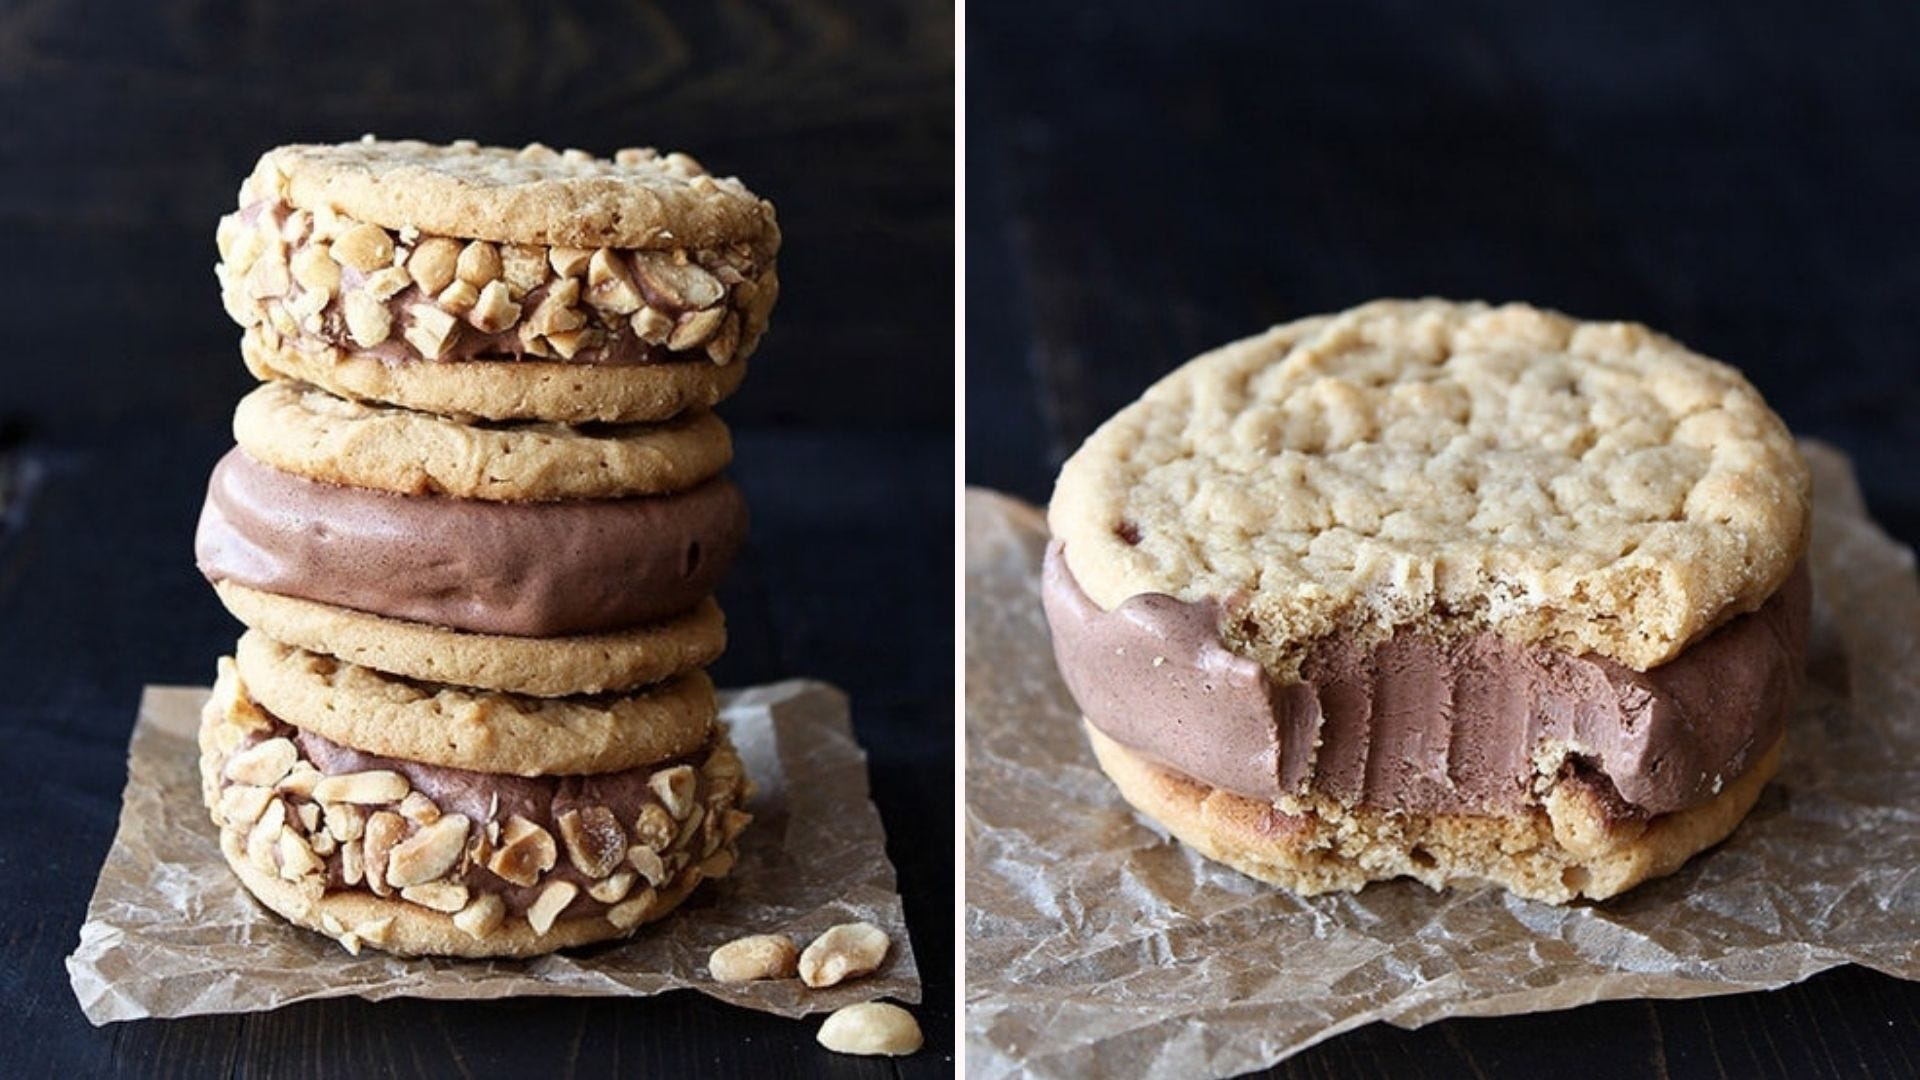 A stack of peanut butter chocolate ice cream sandwiches; one sandwich with a bite taken out